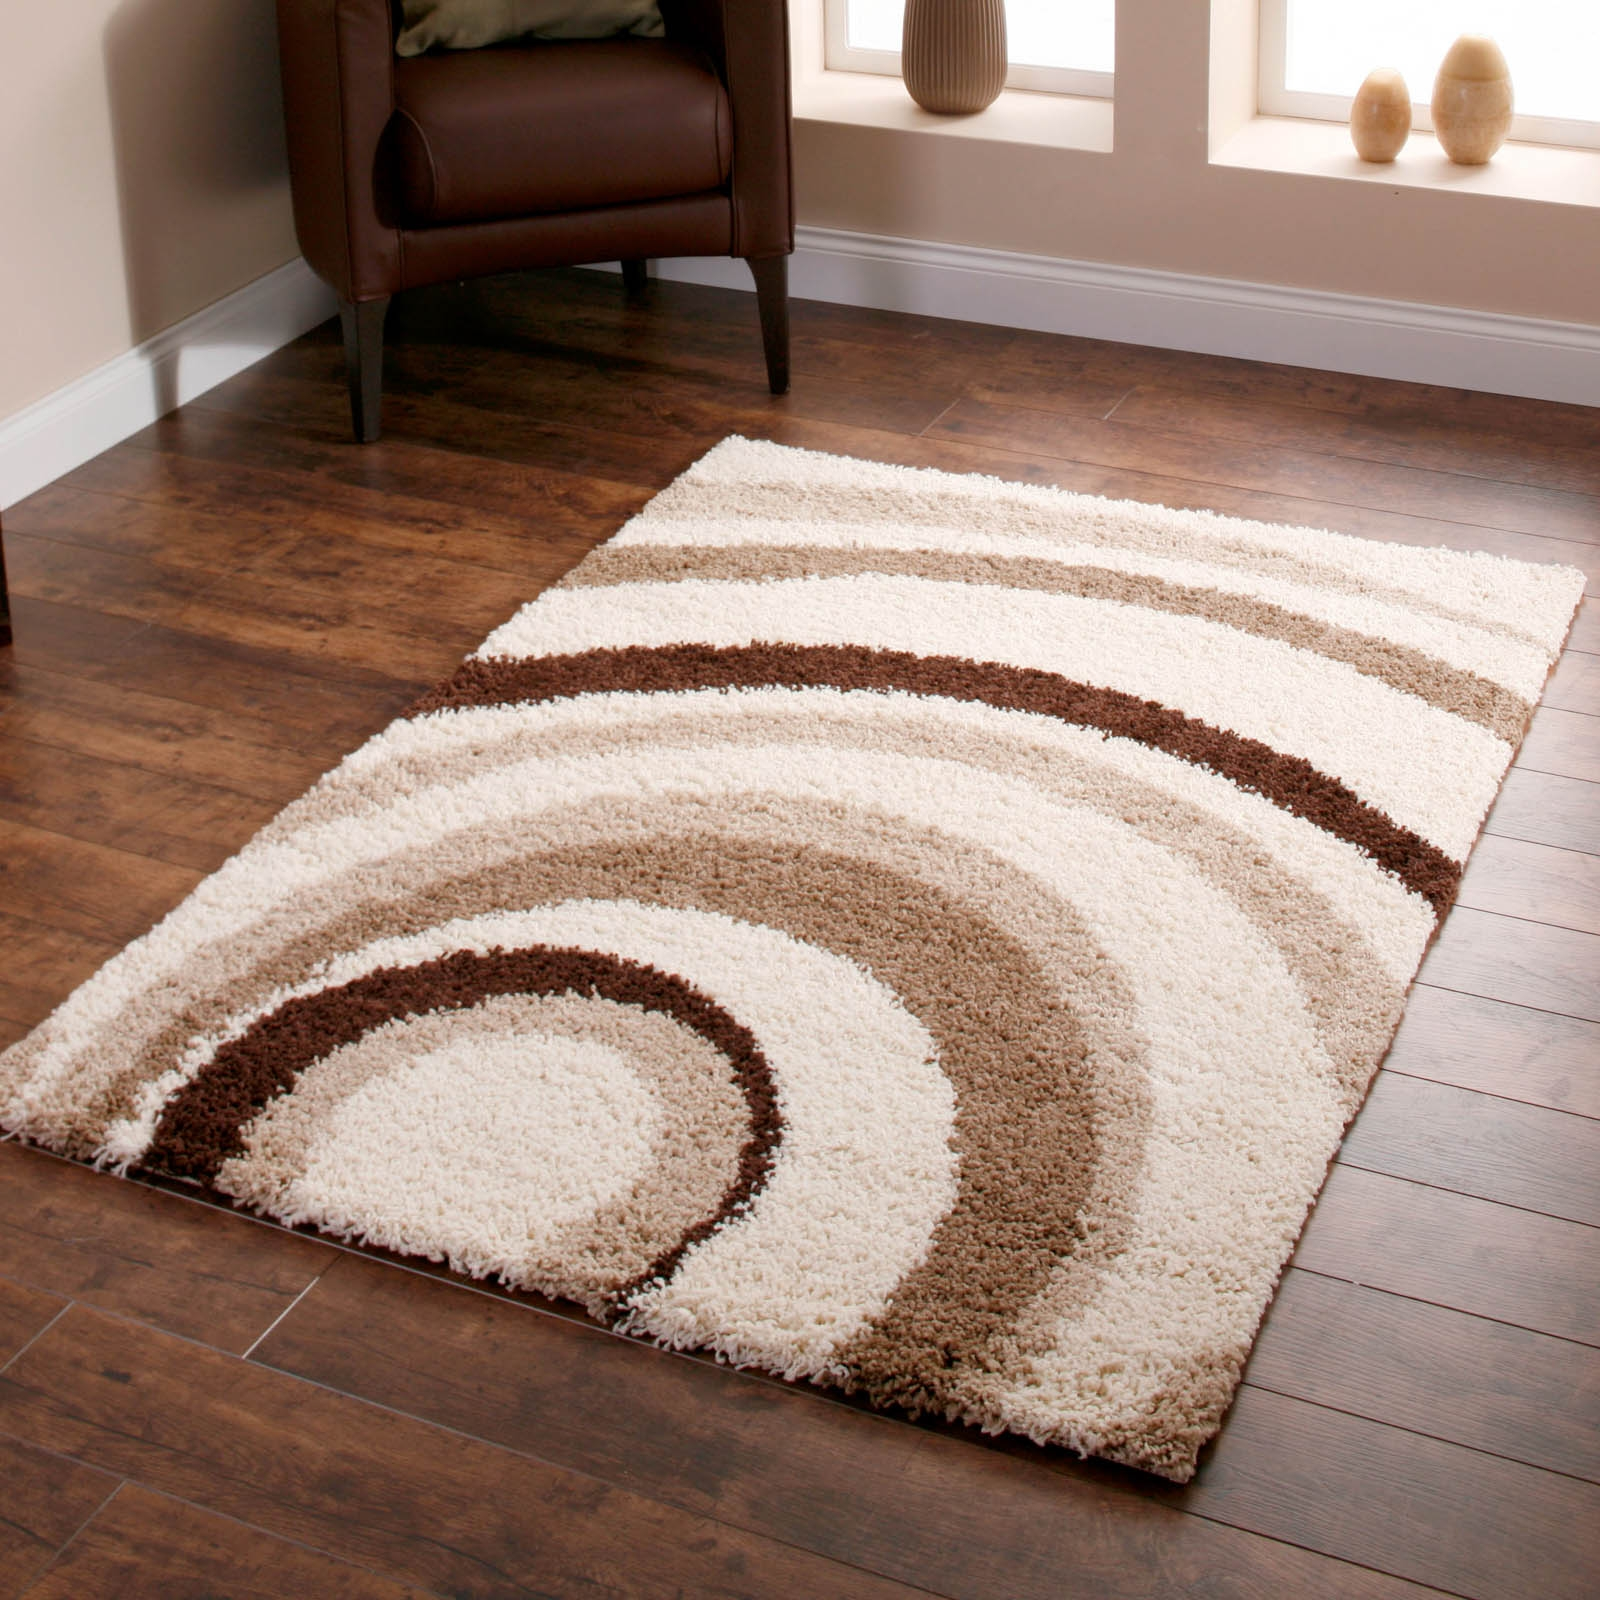 Shaggy Rugs Elegance Home Fashion Pertaining To Shaggy Rugs (Image 11 of 15)